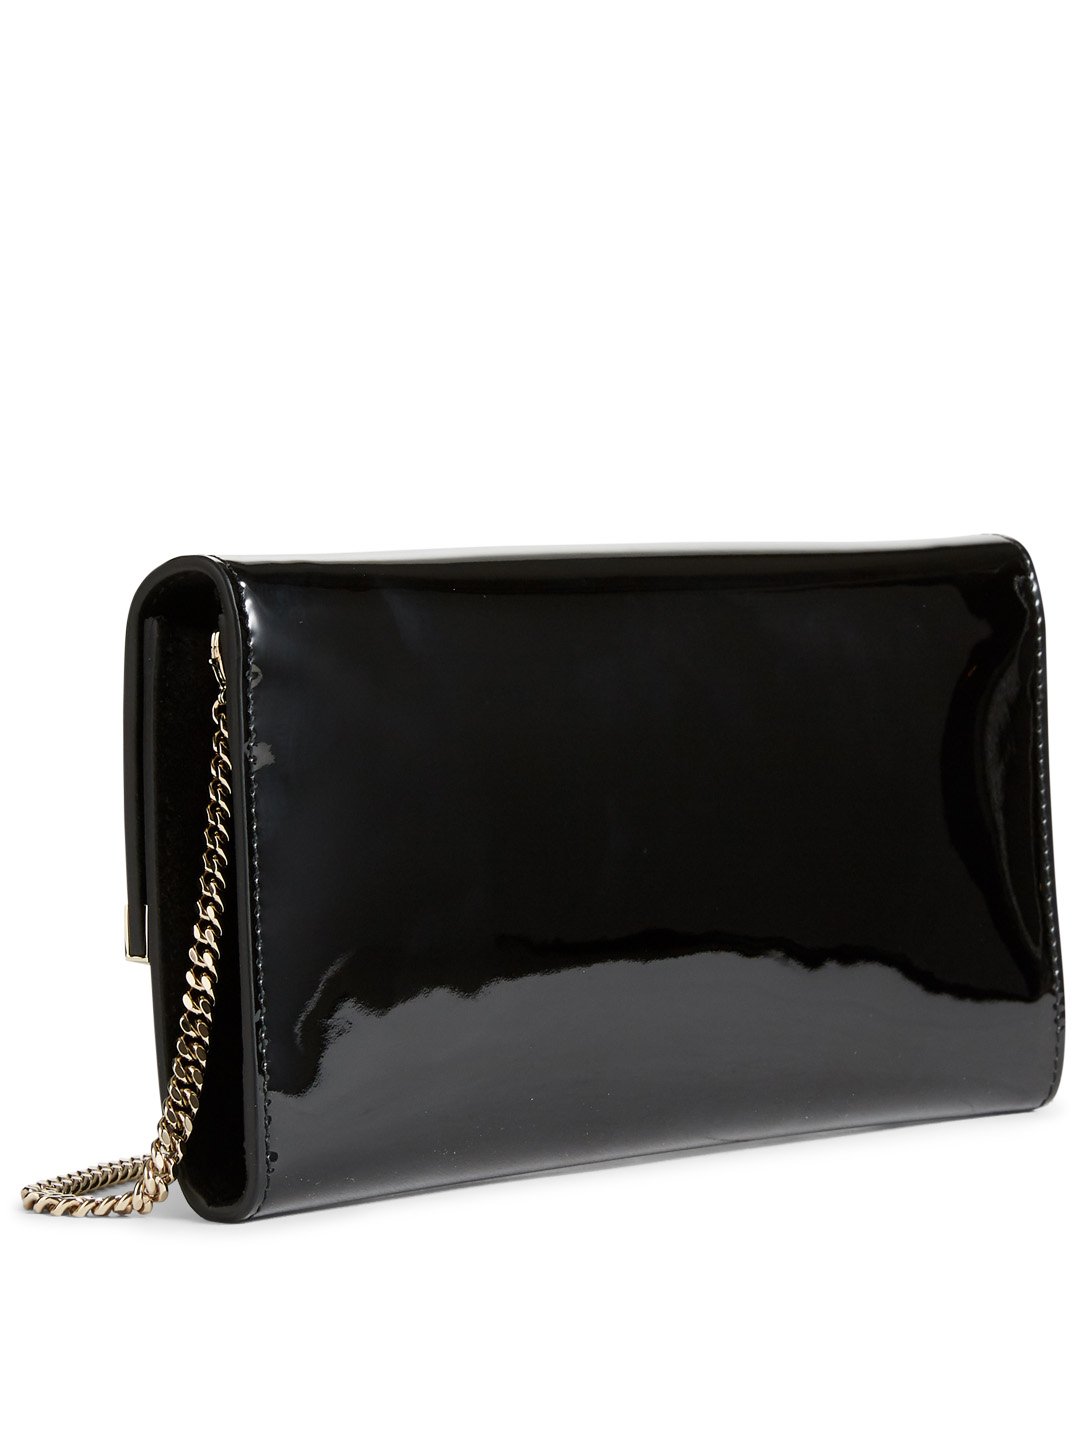 JIMMY CHOO Emmie Patent Leather Clutch Bag Womens Black